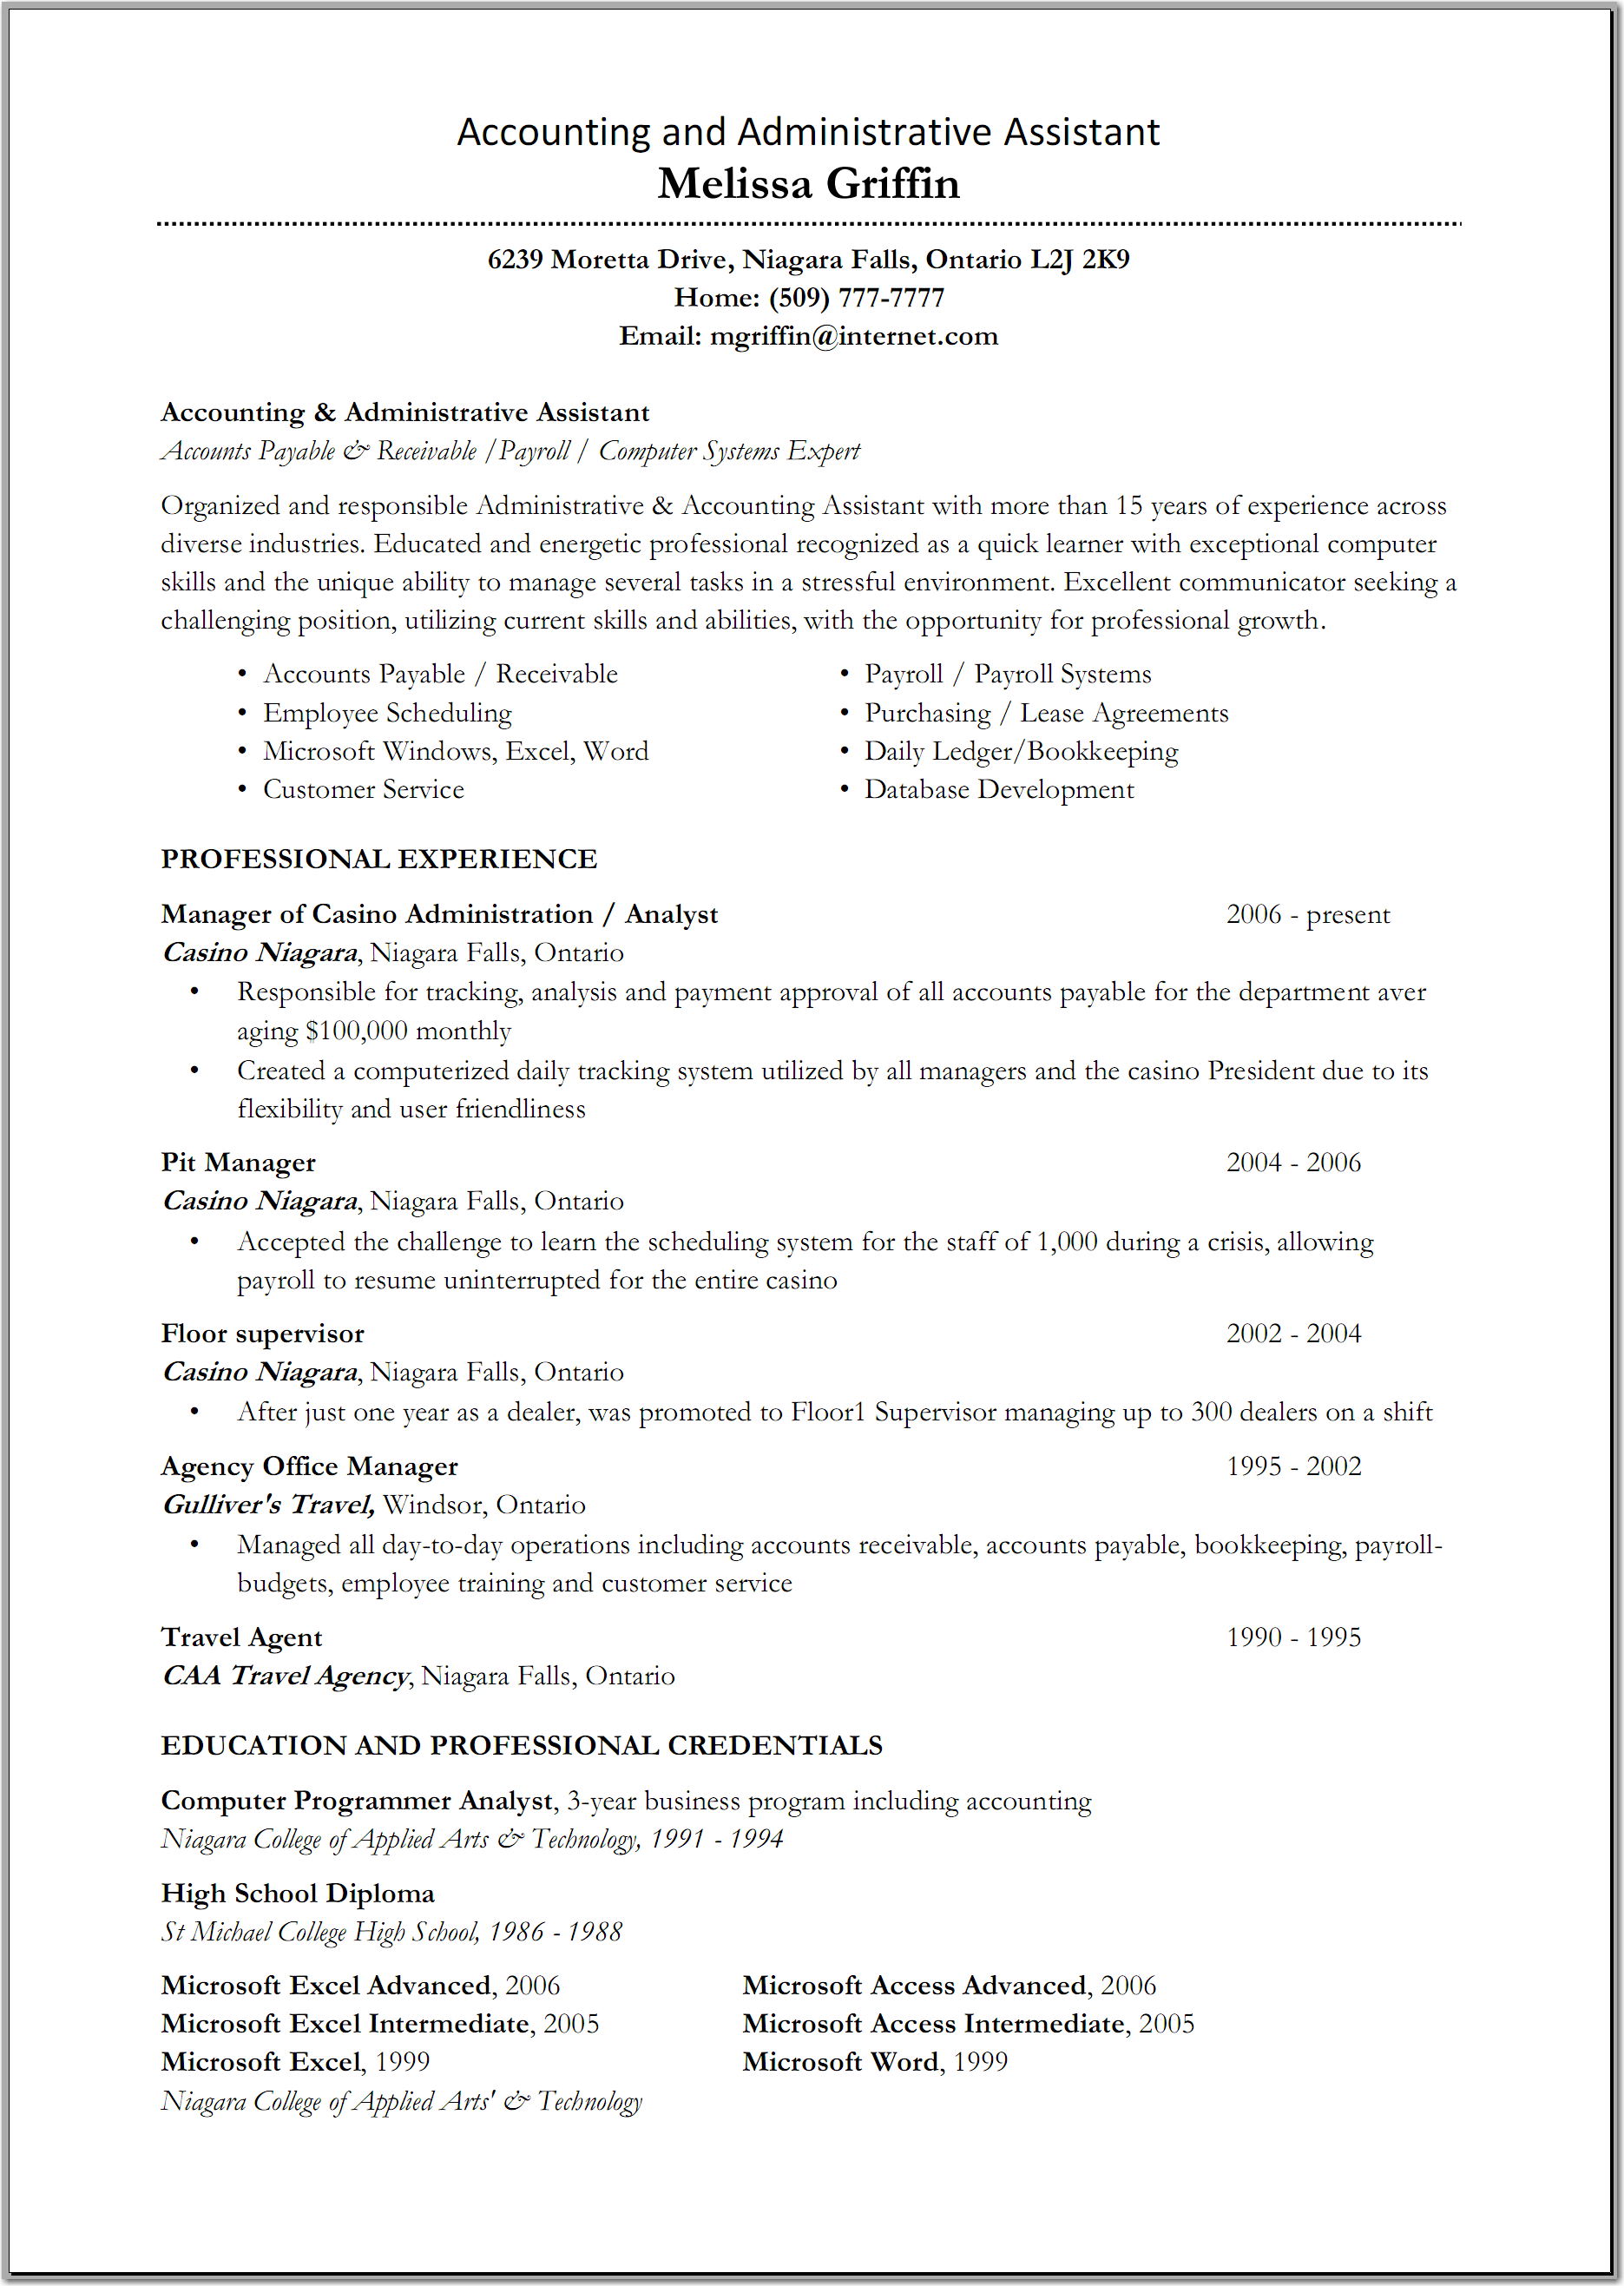 Accounting Student Resume Administration Resume Sample Resumecompanion #career